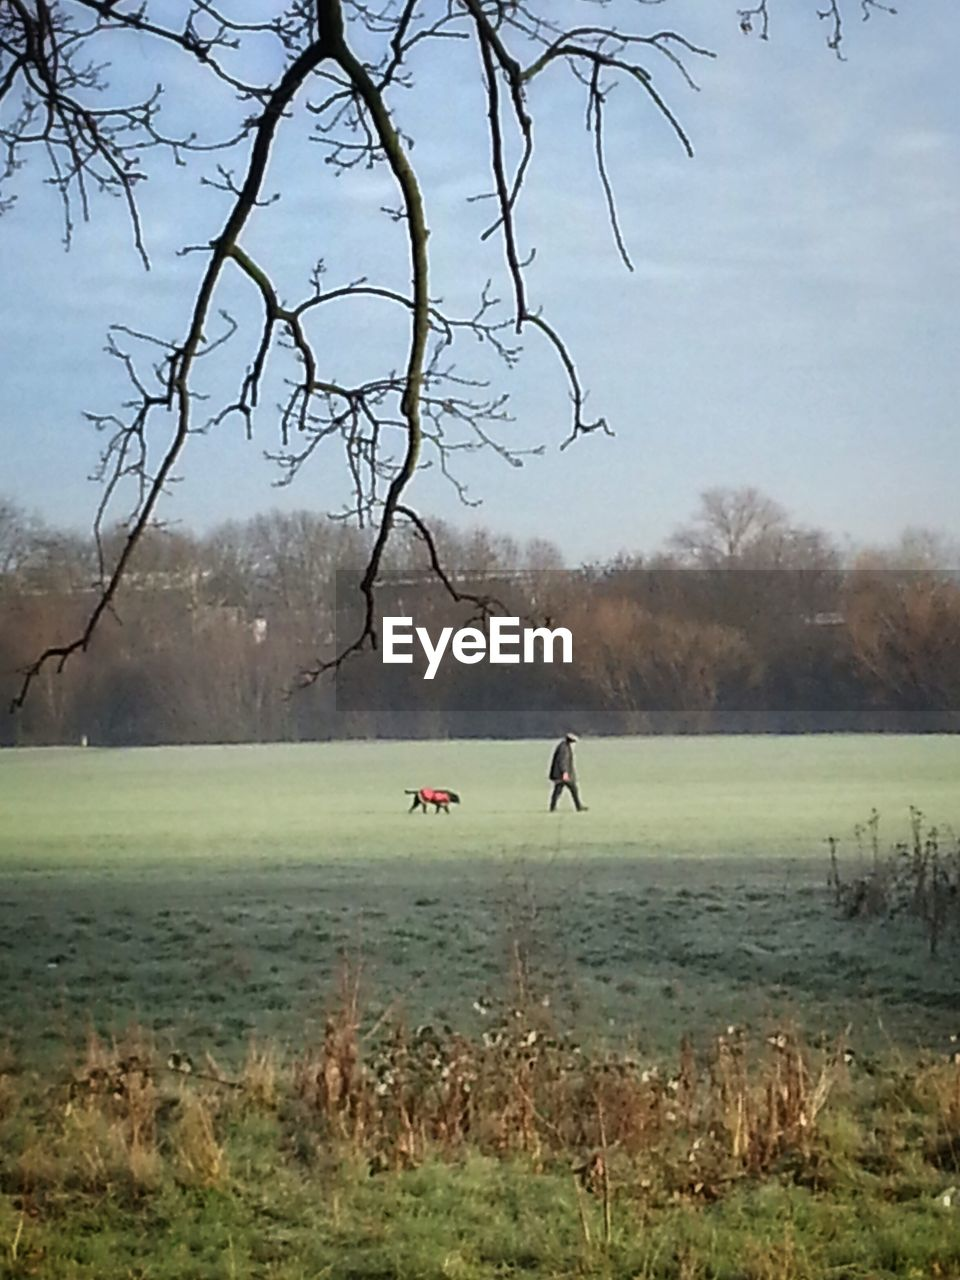 tree, nature, bare tree, grass, field, real people, day, leisure activity, outdoors, landscape, tranquility, beauty in nature, fog, scenics, growth, lifestyles, sky, men, branch, water, sport, flying, golf course, golf, one person, people